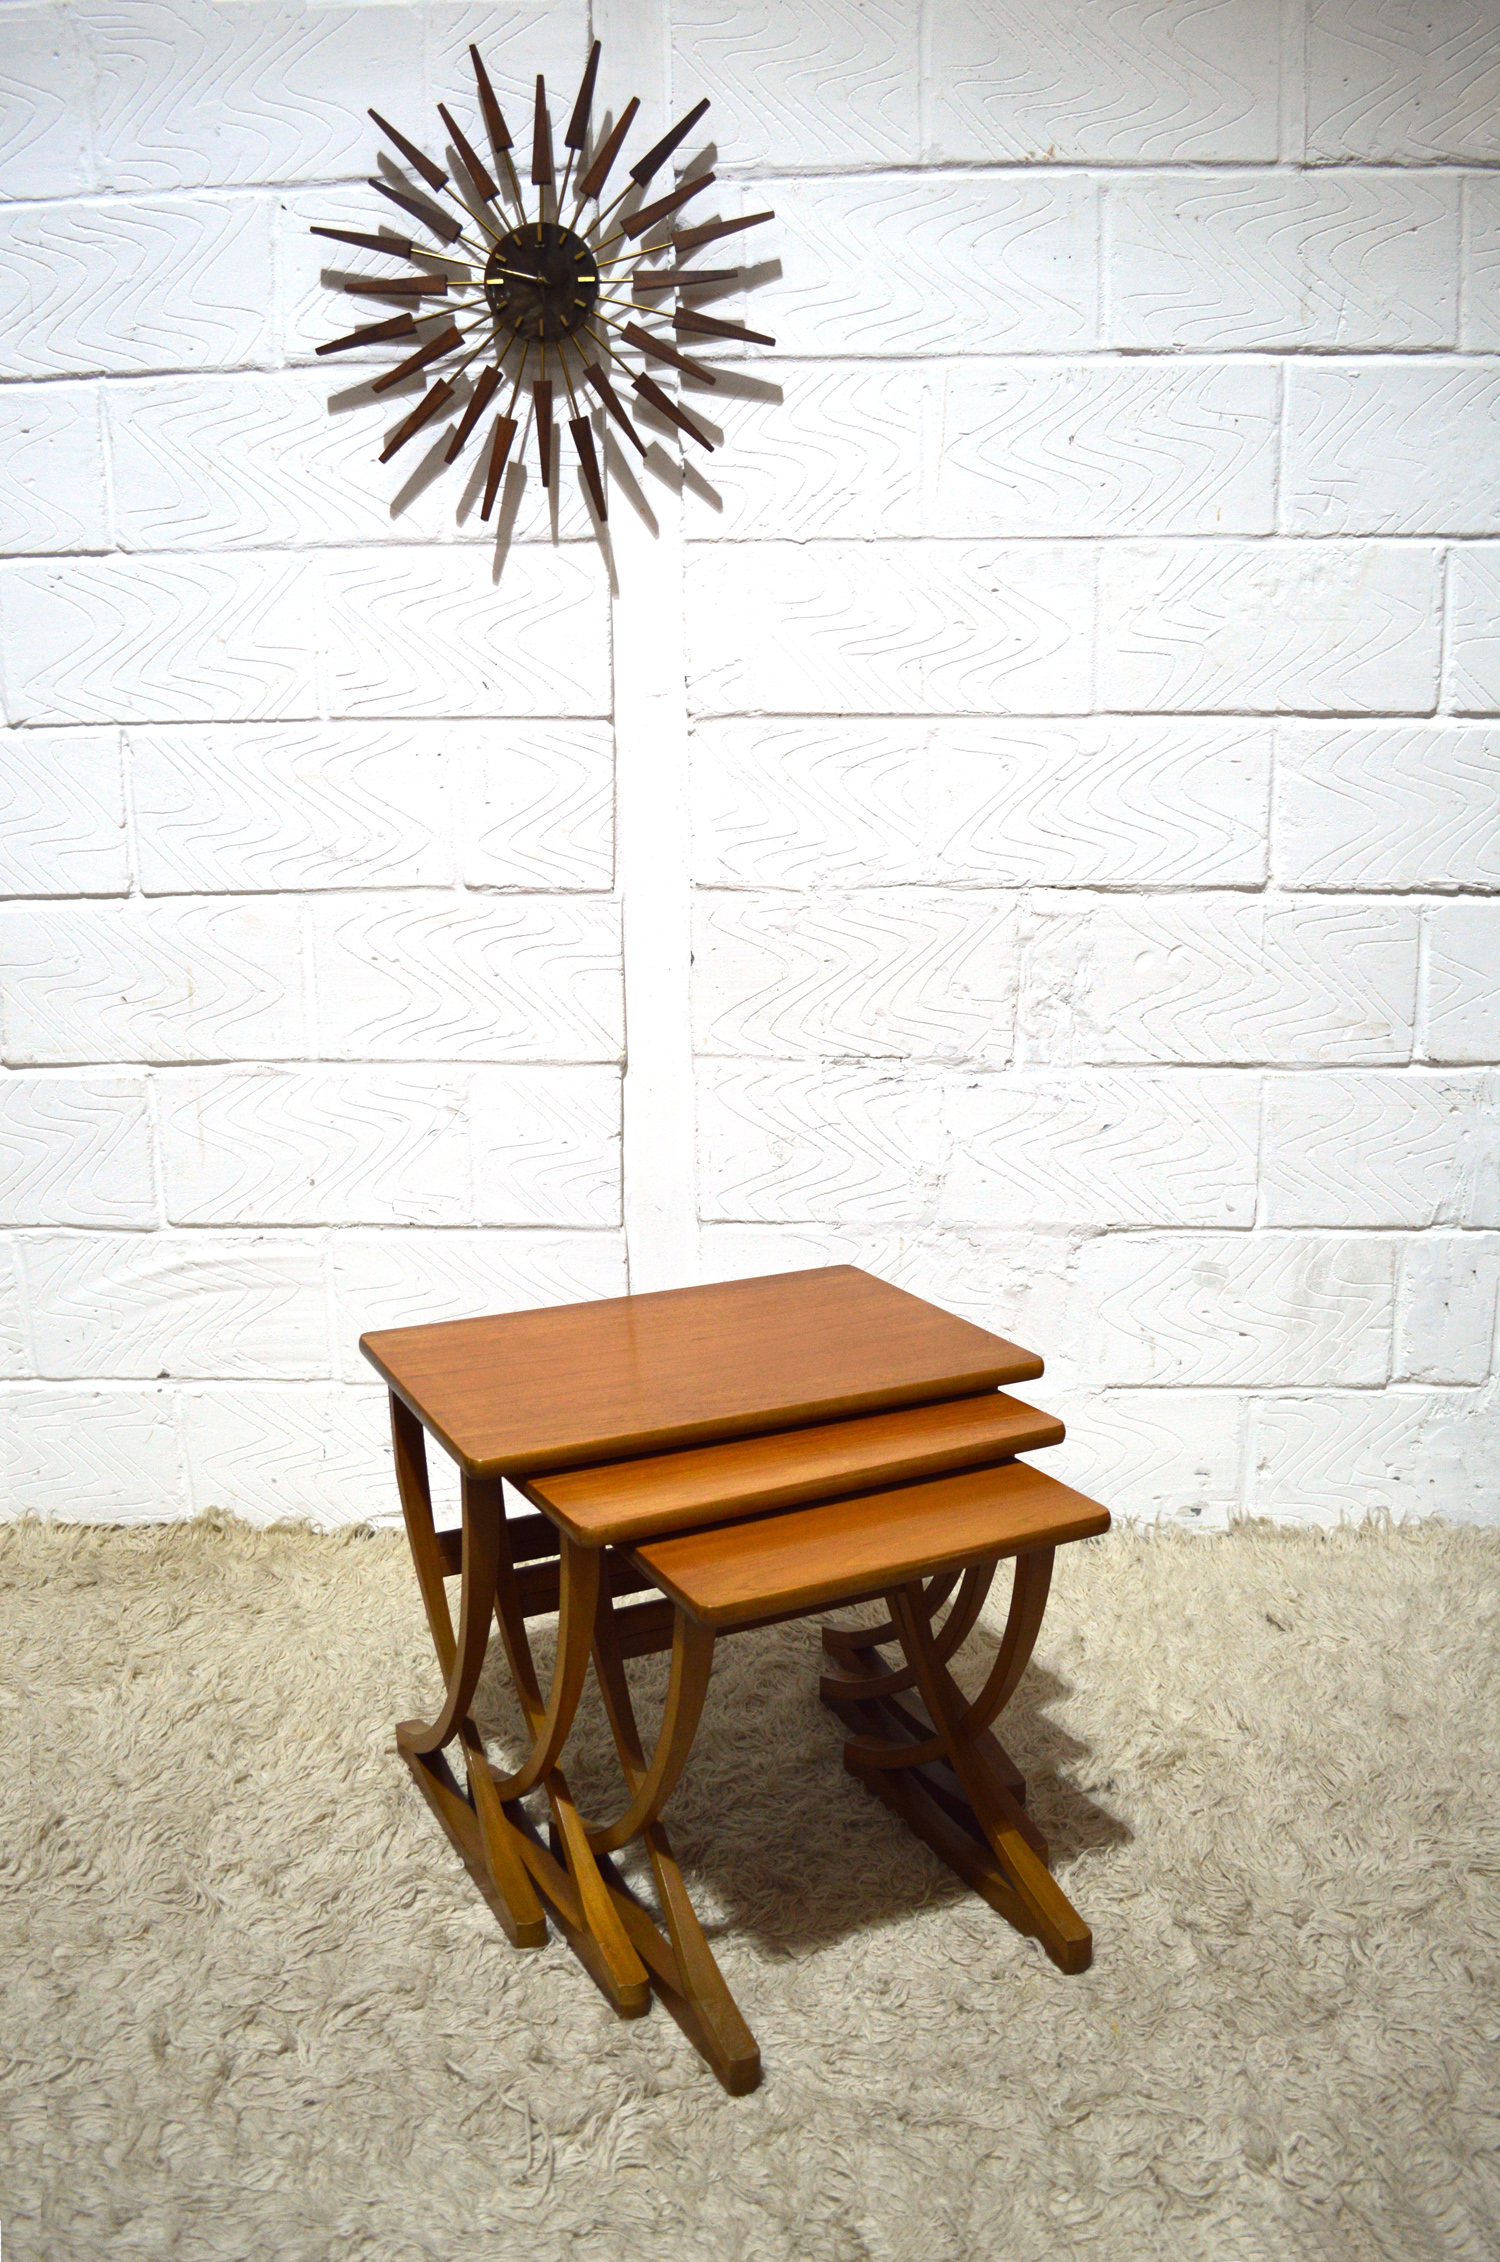 RARE AMAZING CROSS LEGS ART DECO STYLE NATHAN NEST OF TABLES 60S